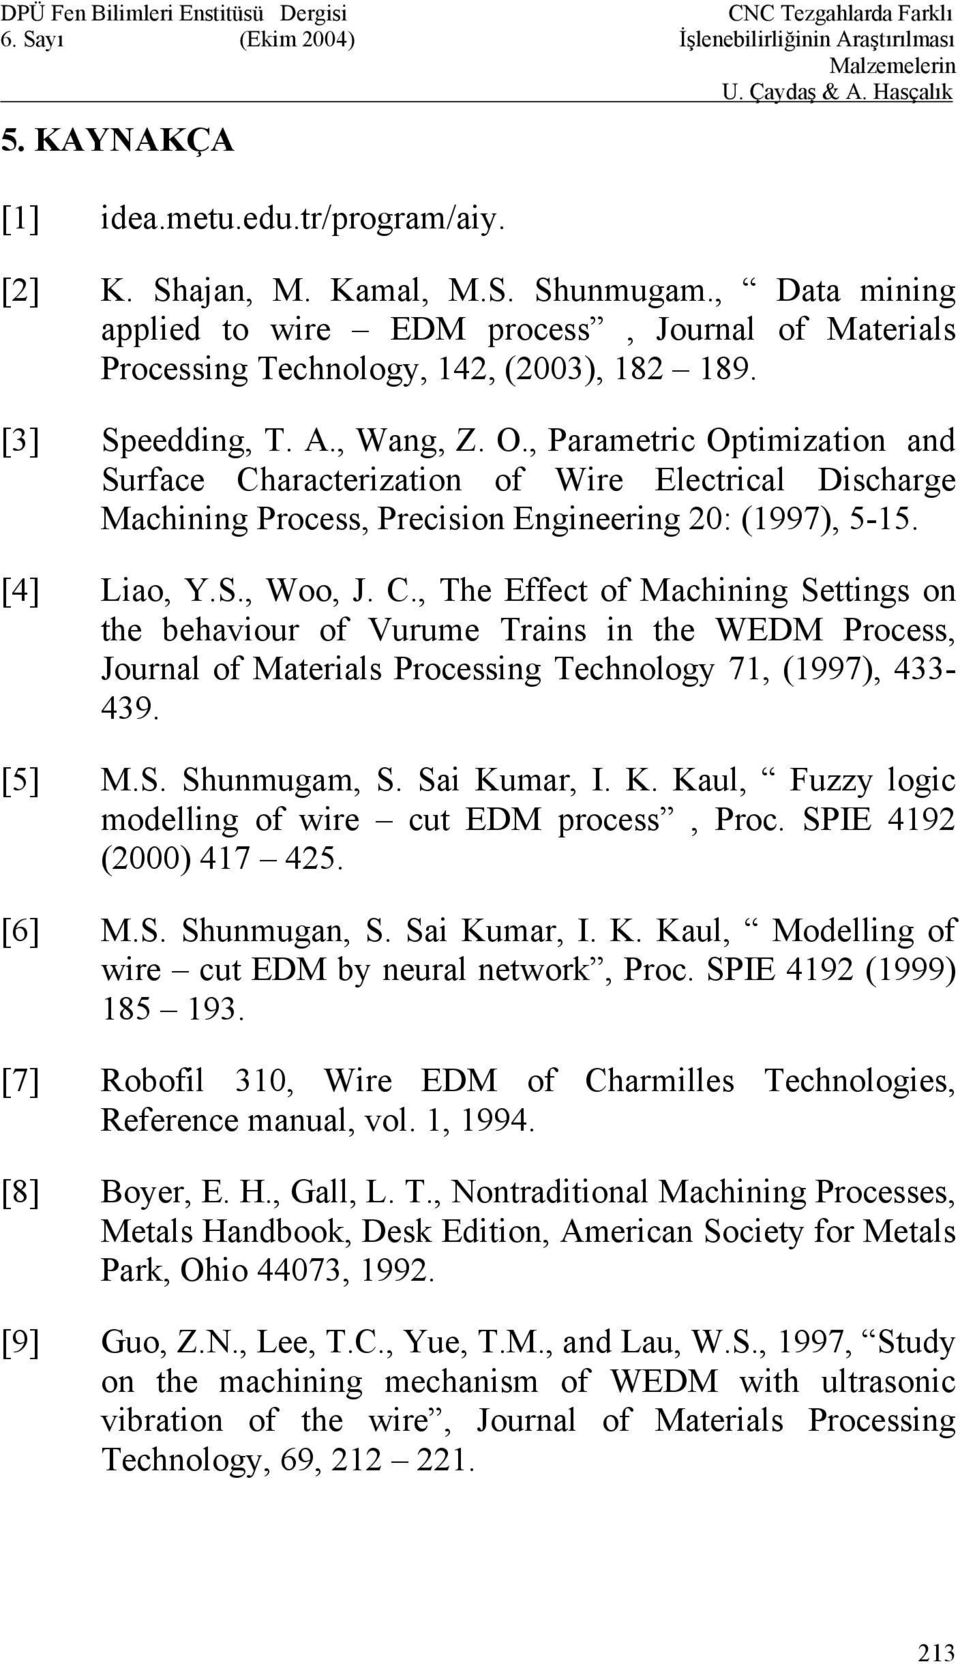 C., The Effect of Machining Settings on the behaviour of Vurume Trains in the WEDM Process, Journal of Materials Processing Technology 71, (1997), 433-439. [5] M.S. Shunmugam, S. Sai Ku